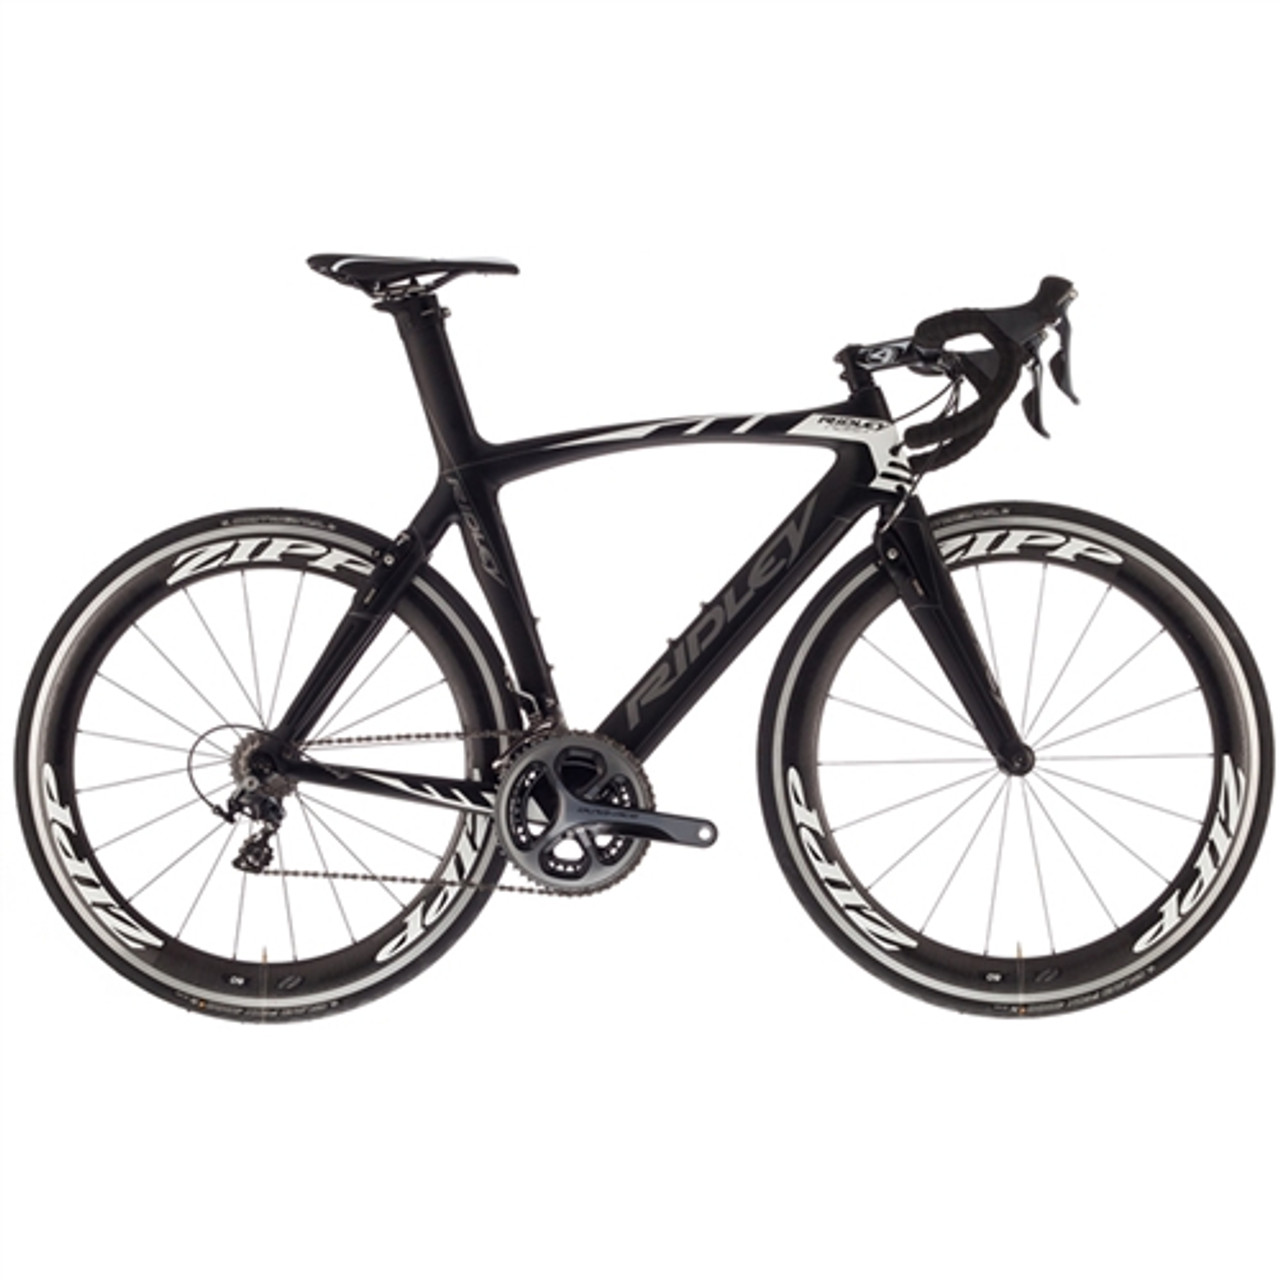 233dbaa811e Ridley Noah Fast Shimano Di2 equipped Carbon Bicycle, Black & White - Build  It Your